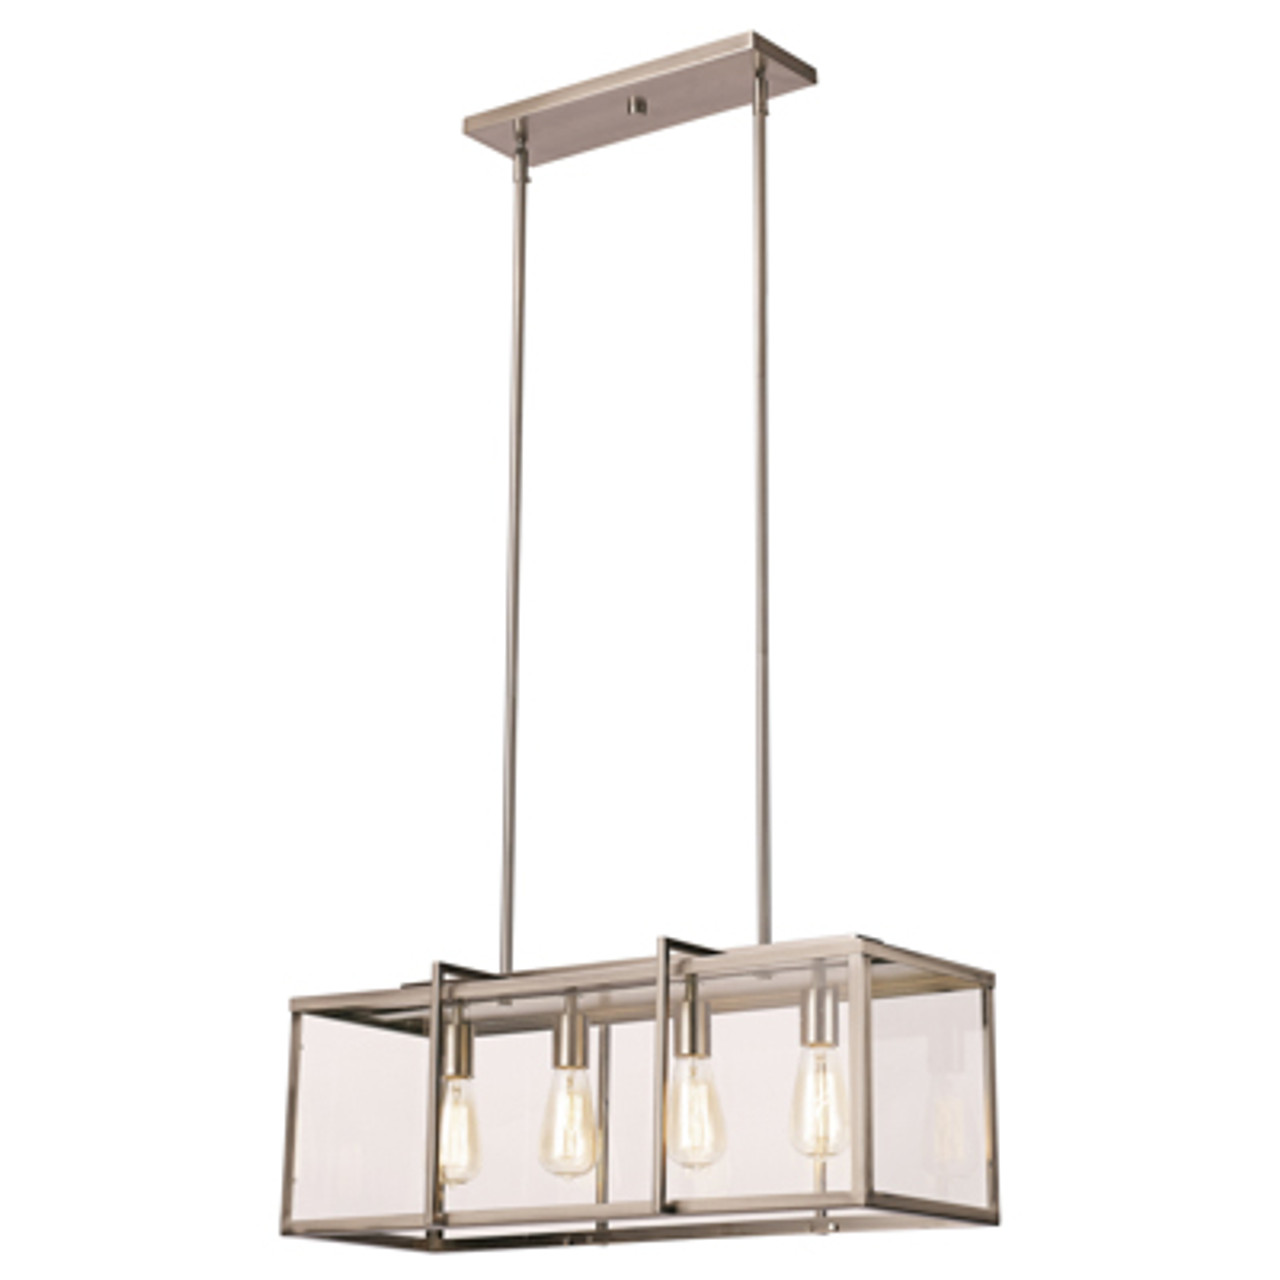 Picture of: Trans Globe Lighting 10213 Bn 12 Indoor Brushed Nickel Industrial Pendant At Clw Lighting